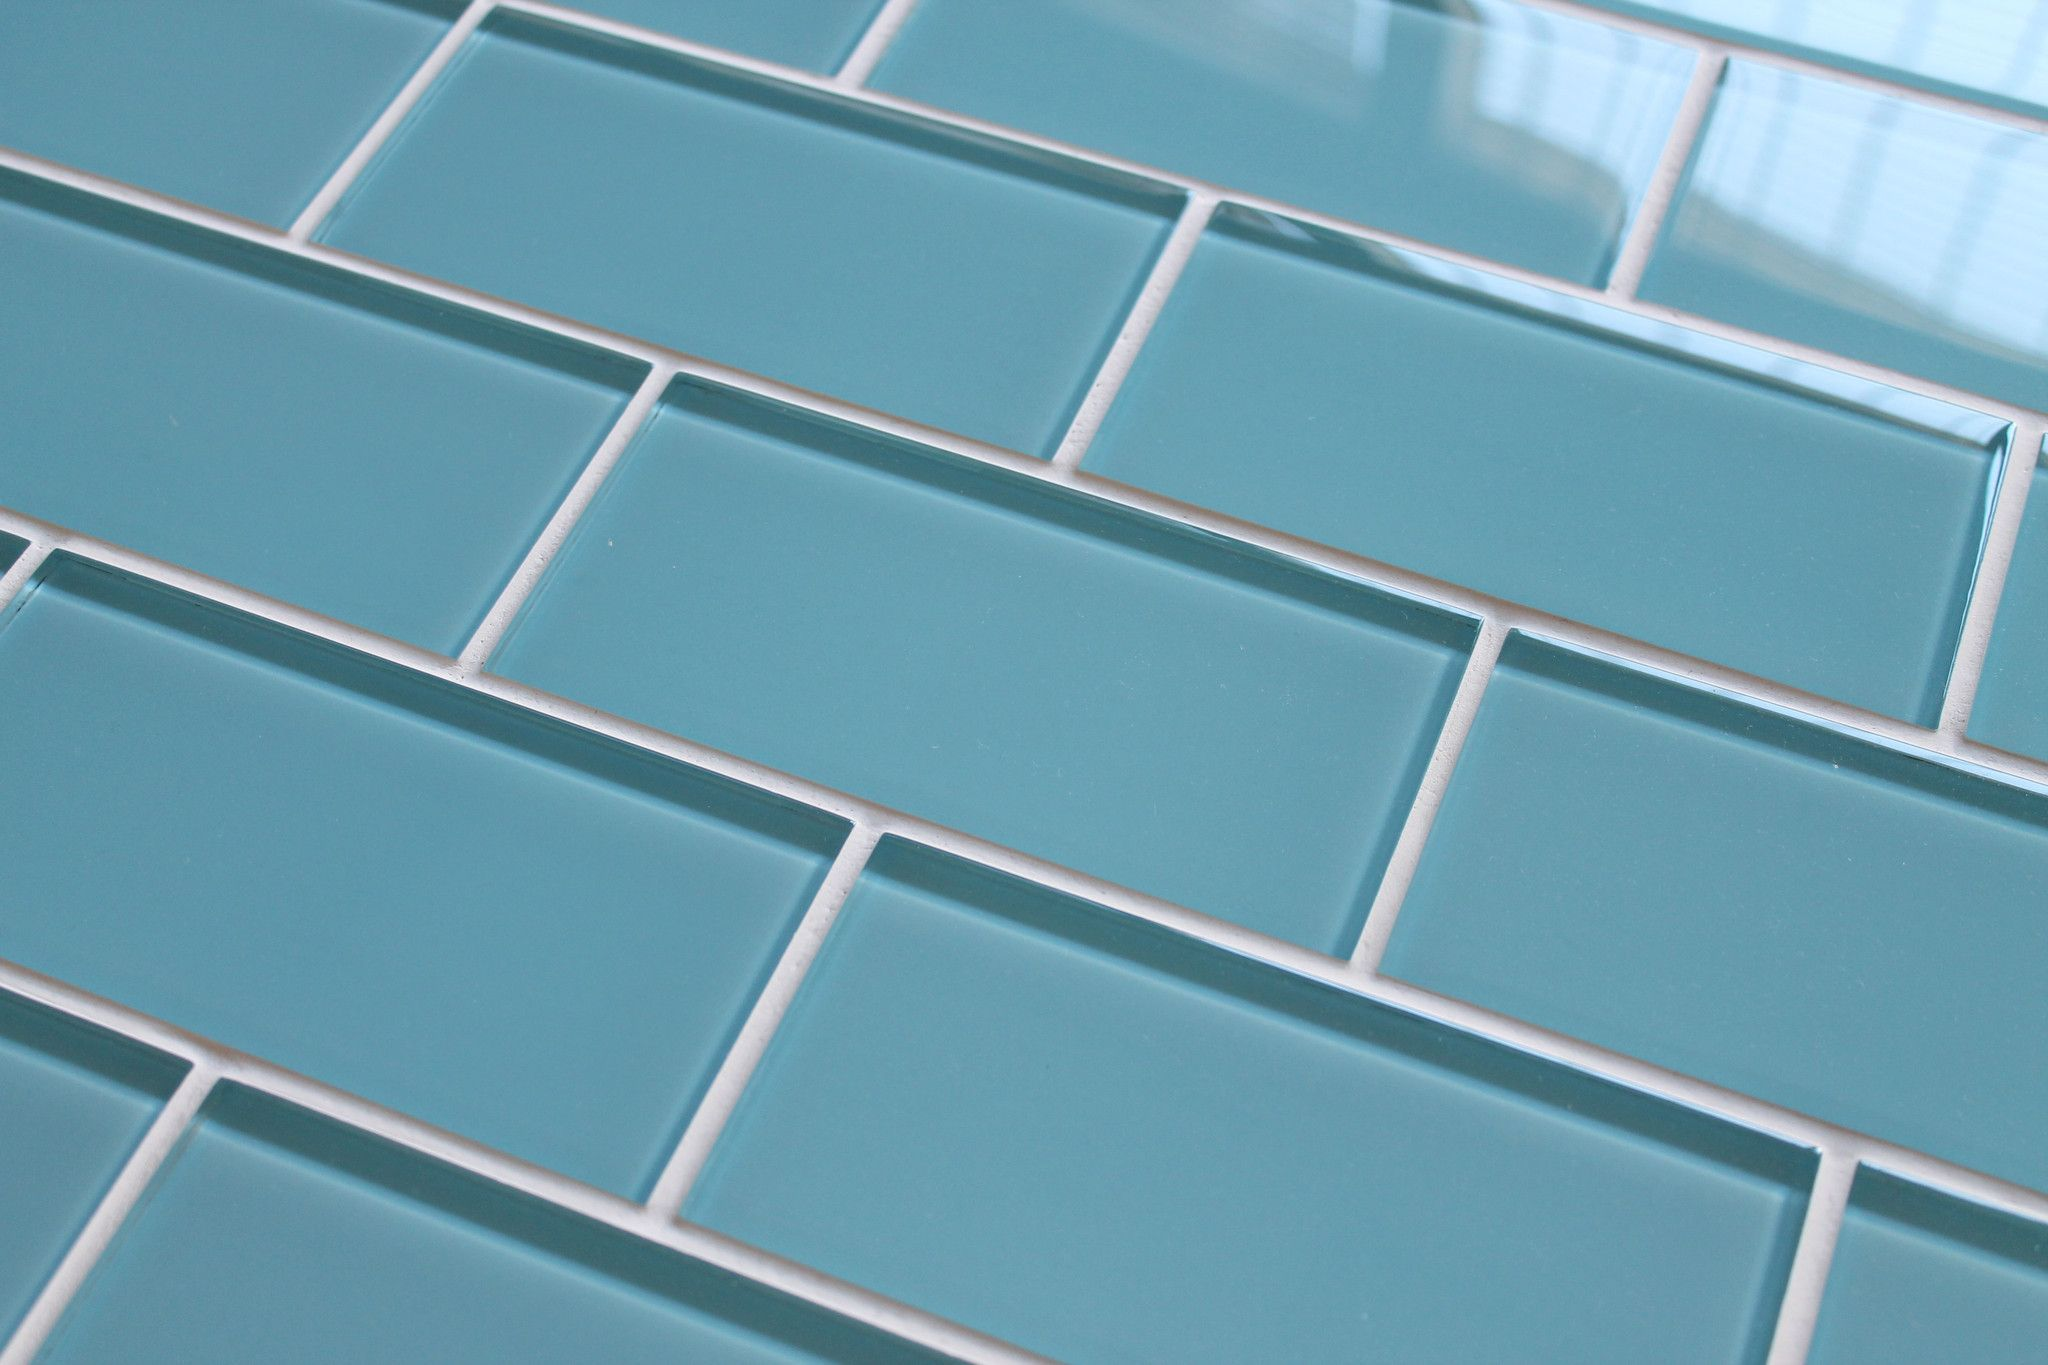 Infinity Blue 3x6 Glass Subway Tiles